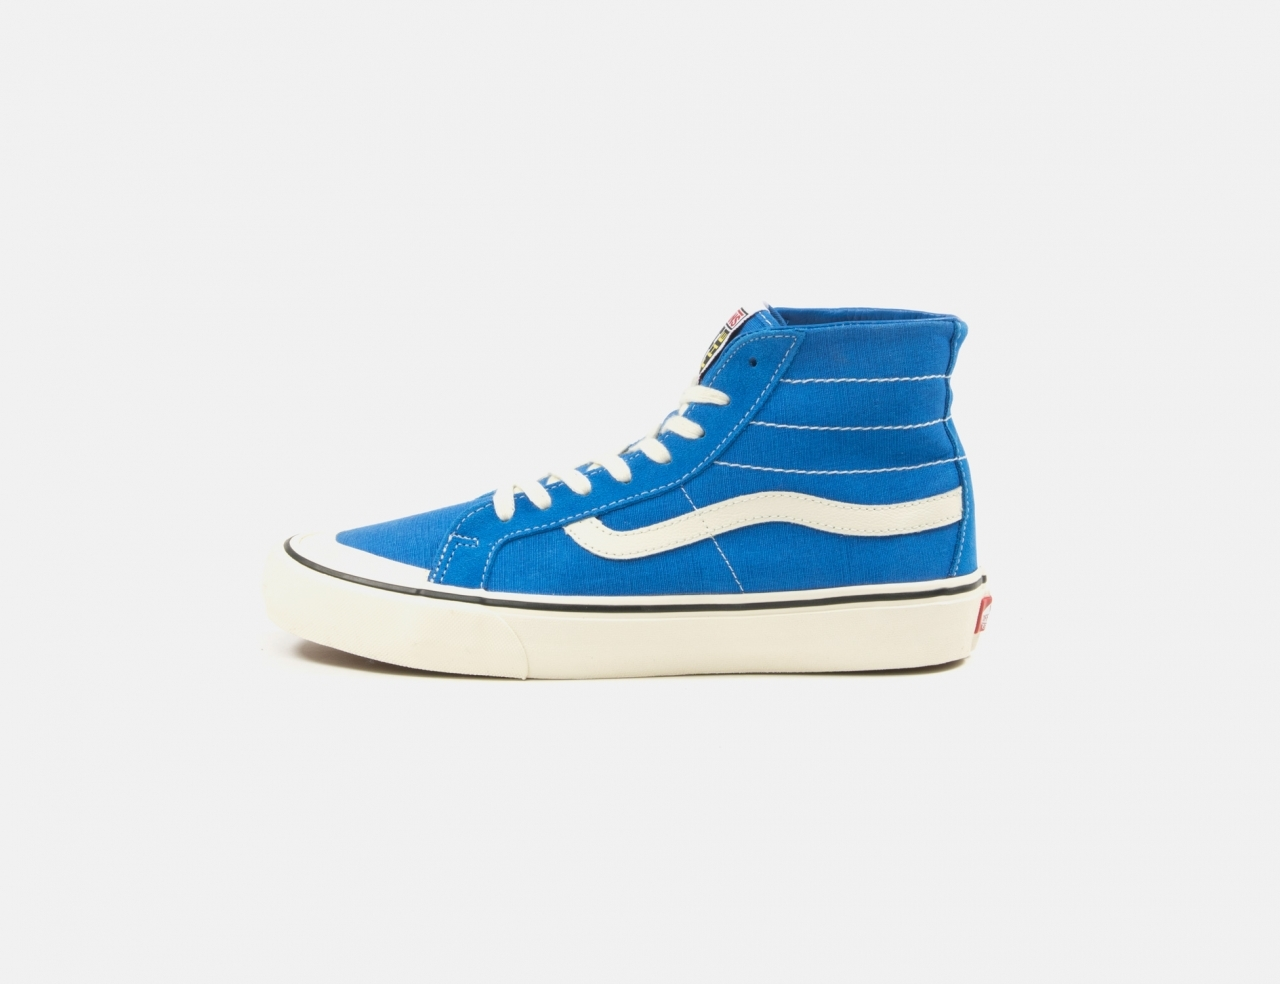 VANS Sk8-Hi 138 Decon SF Sneaker - (Salt Wash) Directoire Blue / Antique white